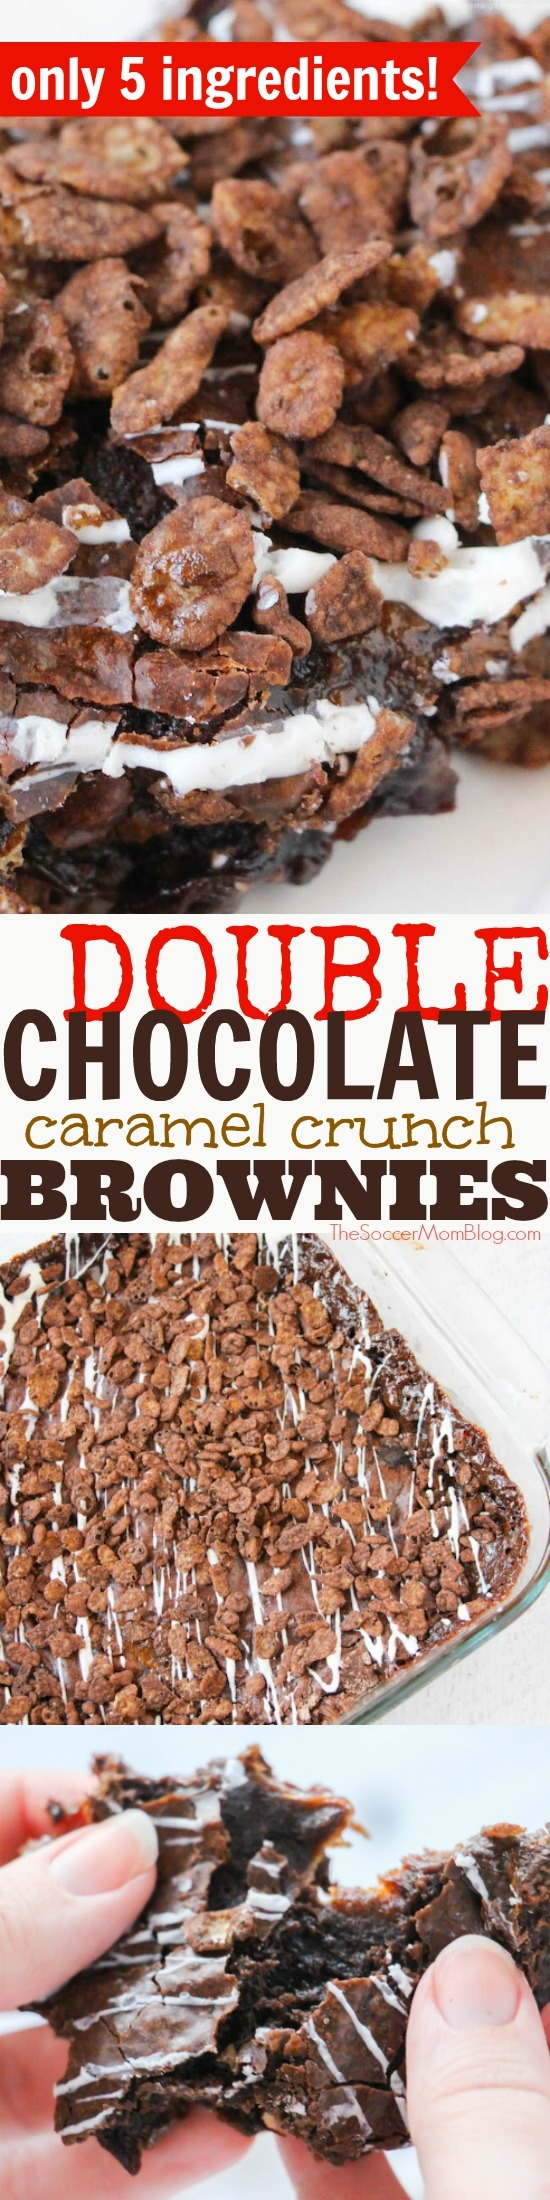 """""""The best brownies ever!"""" These Double Chocolate Caramel Crunch Brownies win high praise and leave no leftovers! Easy holiday dessert recipe box brownie mix hack."""